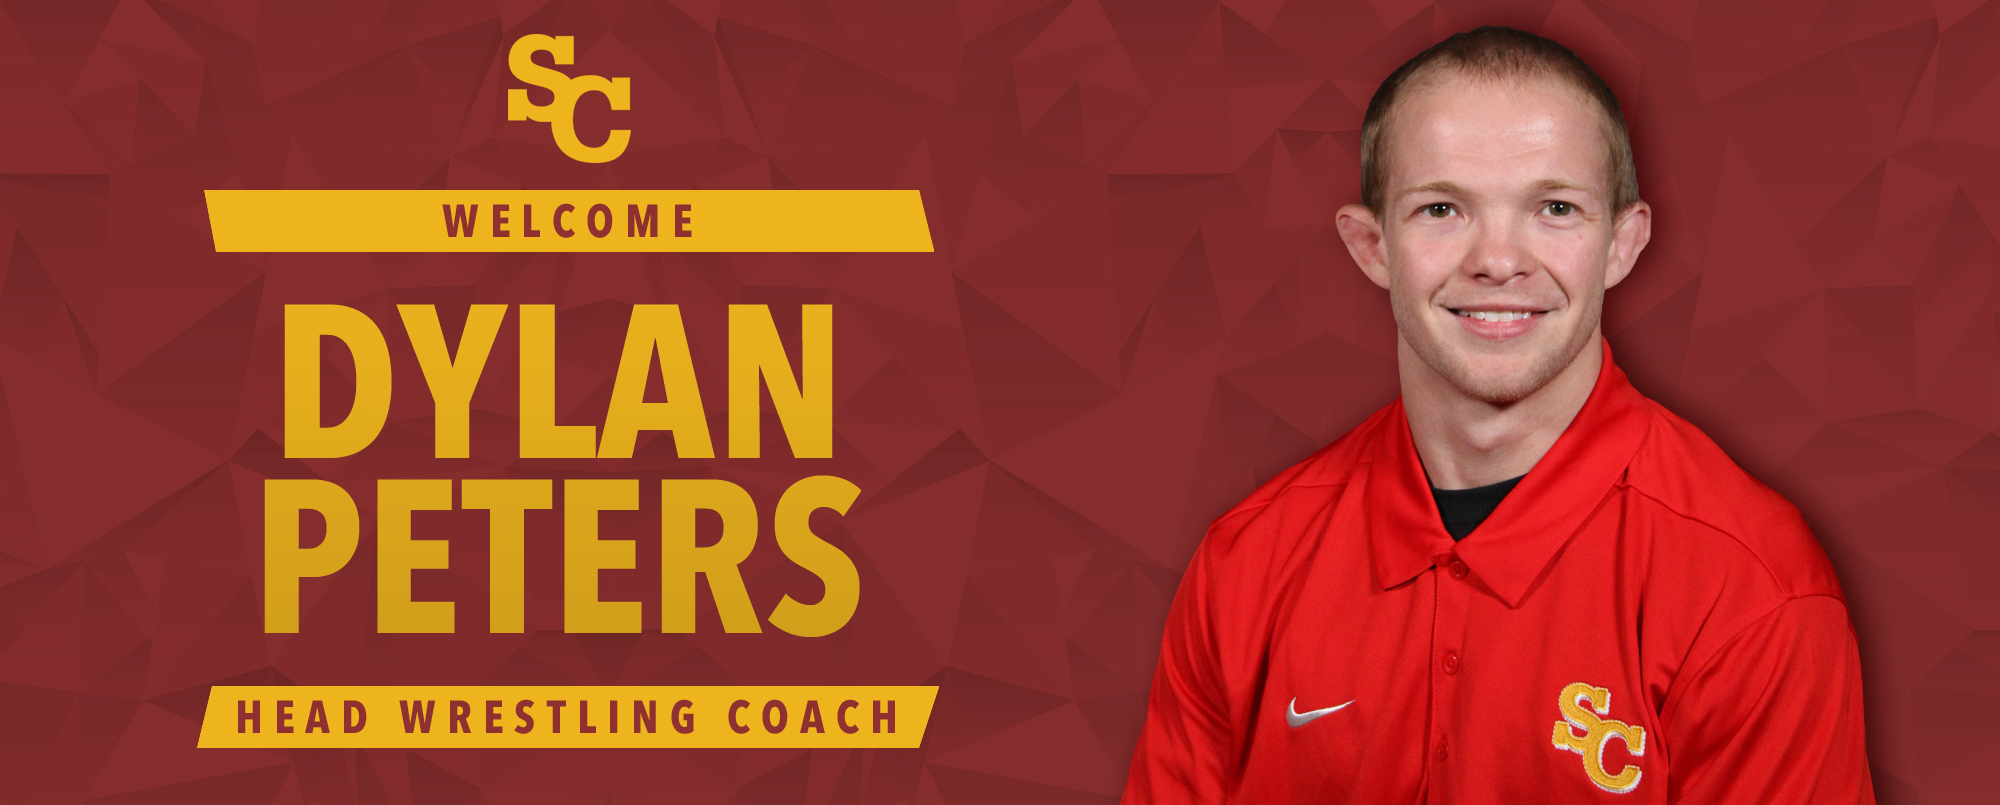 Dylan Peters hired as wrestling coach